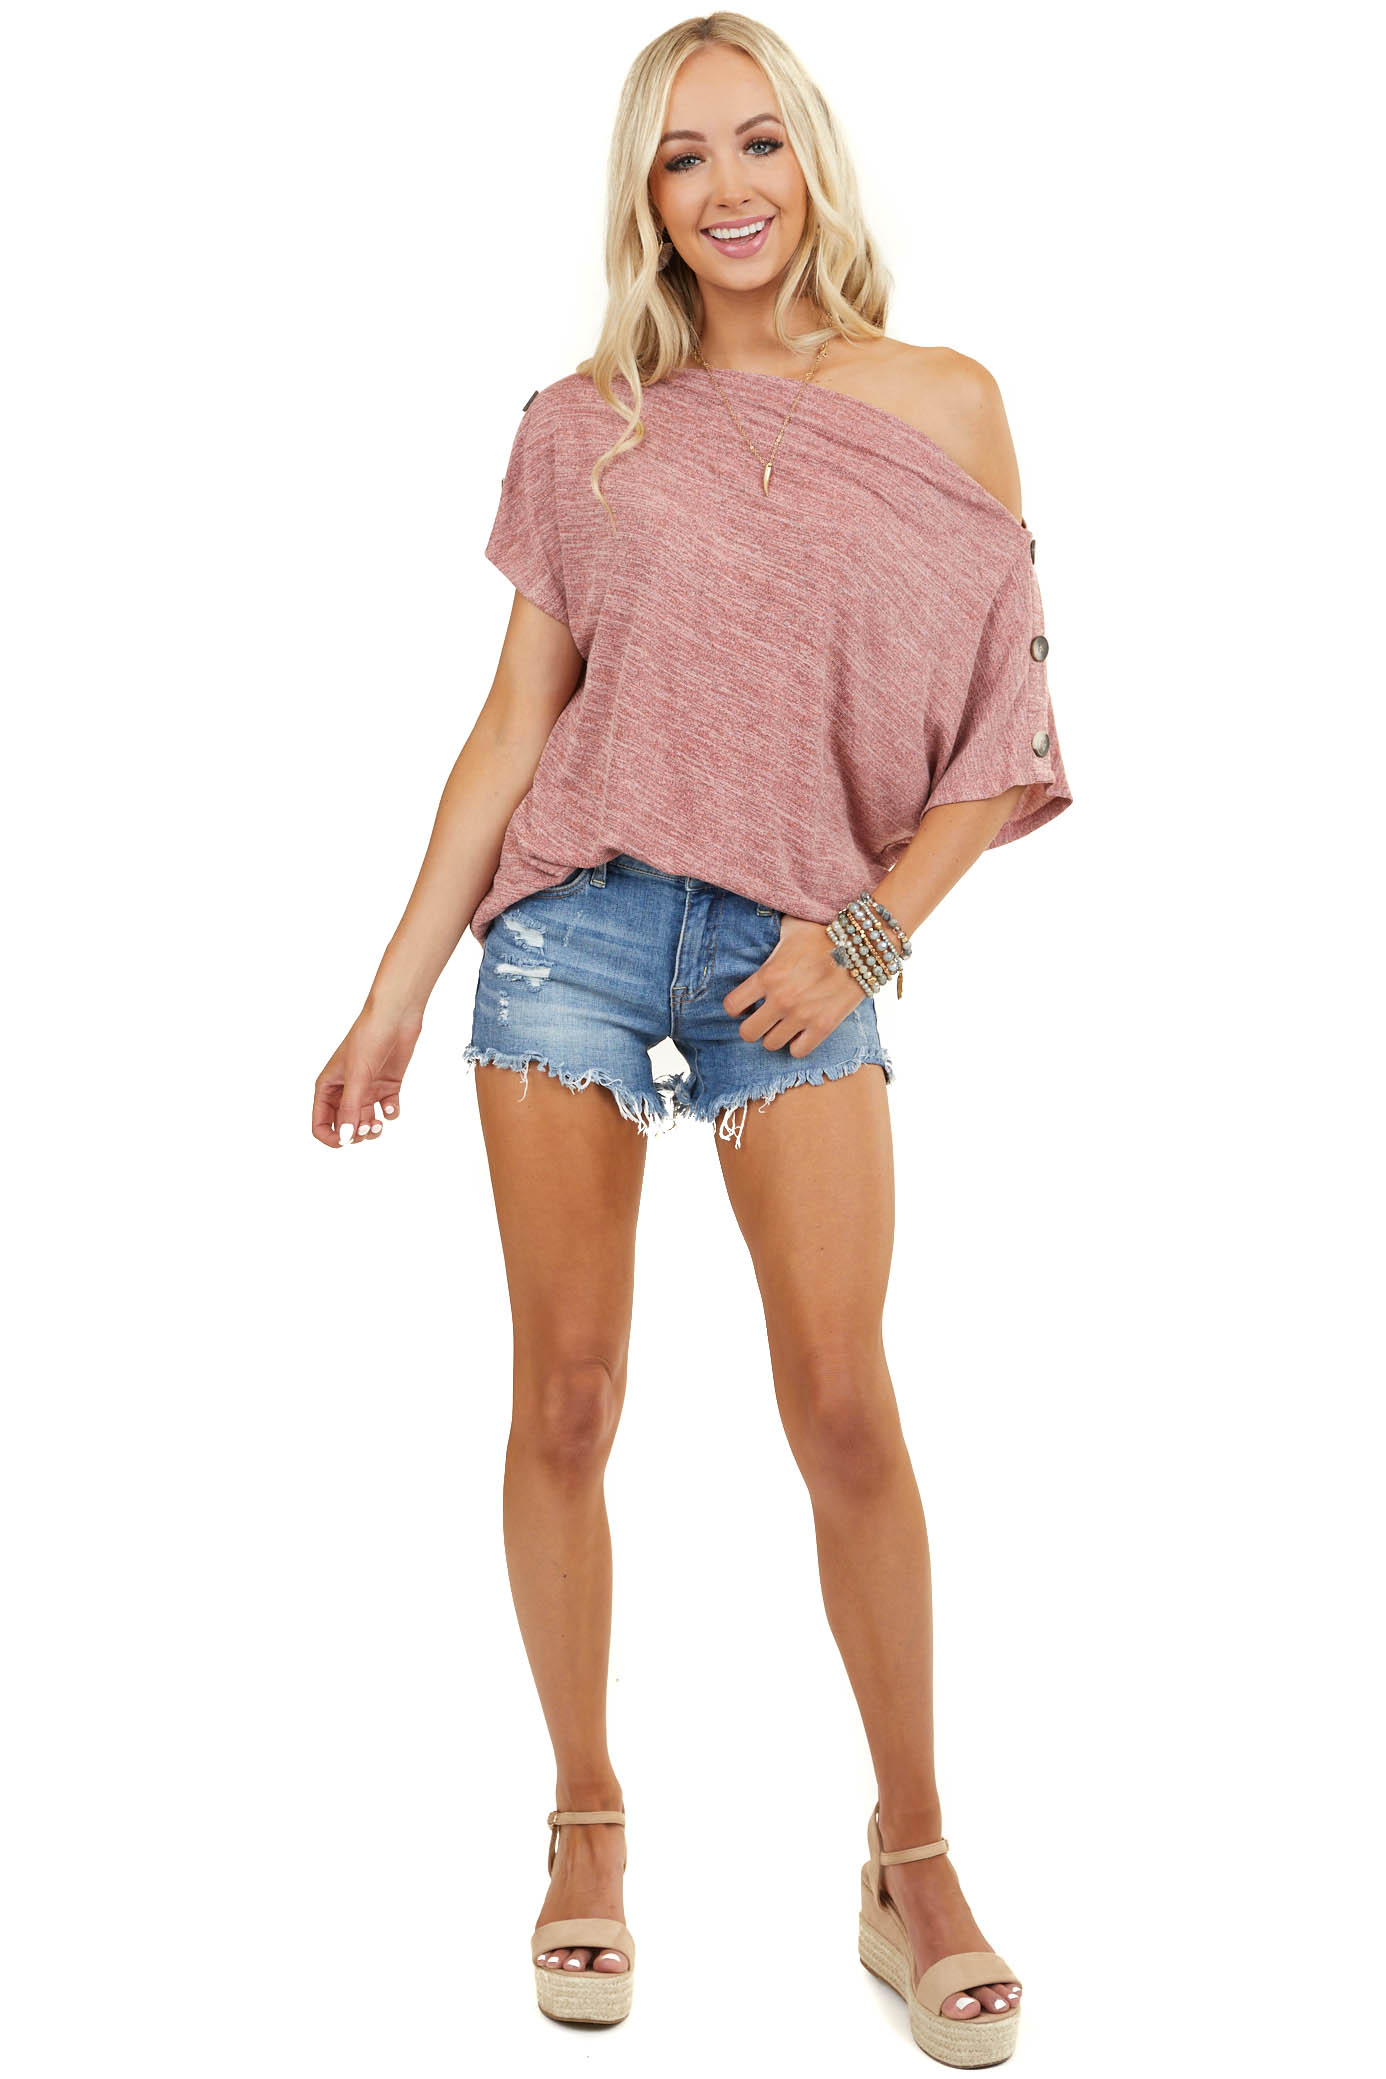 Dusty Blush Heathered Boat Neck Top with Button Details